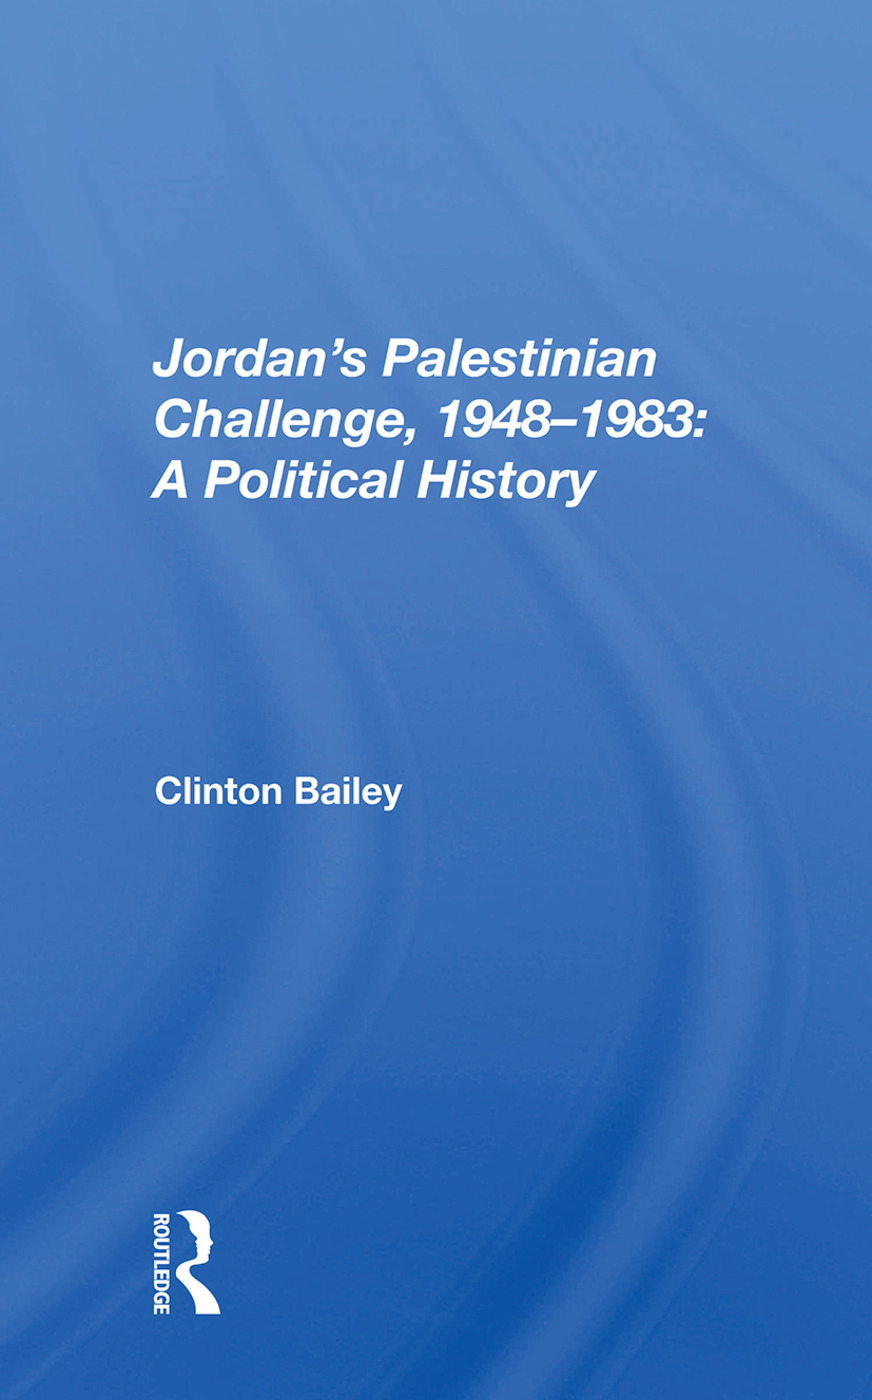 Jordan's Palestinian Challenge, 1948-1983: A Political History book cover